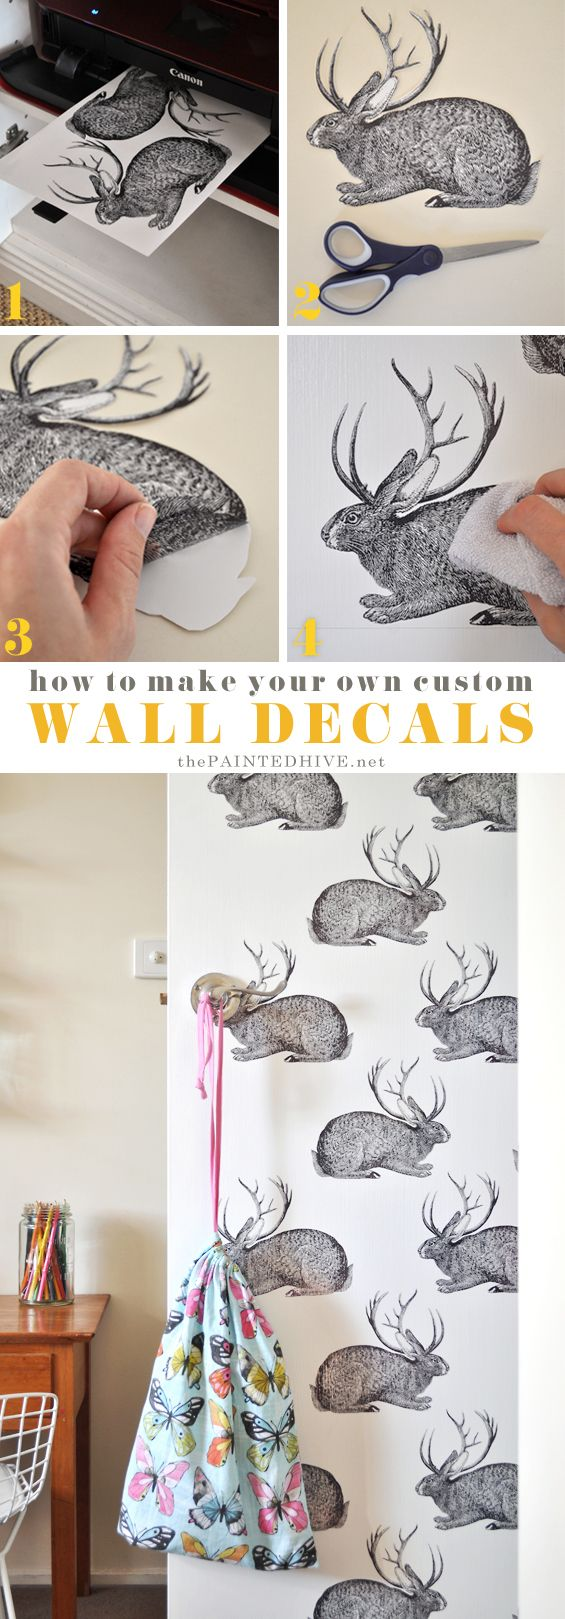 So cool - super affordable DIY decal tutorial that anyone can try!